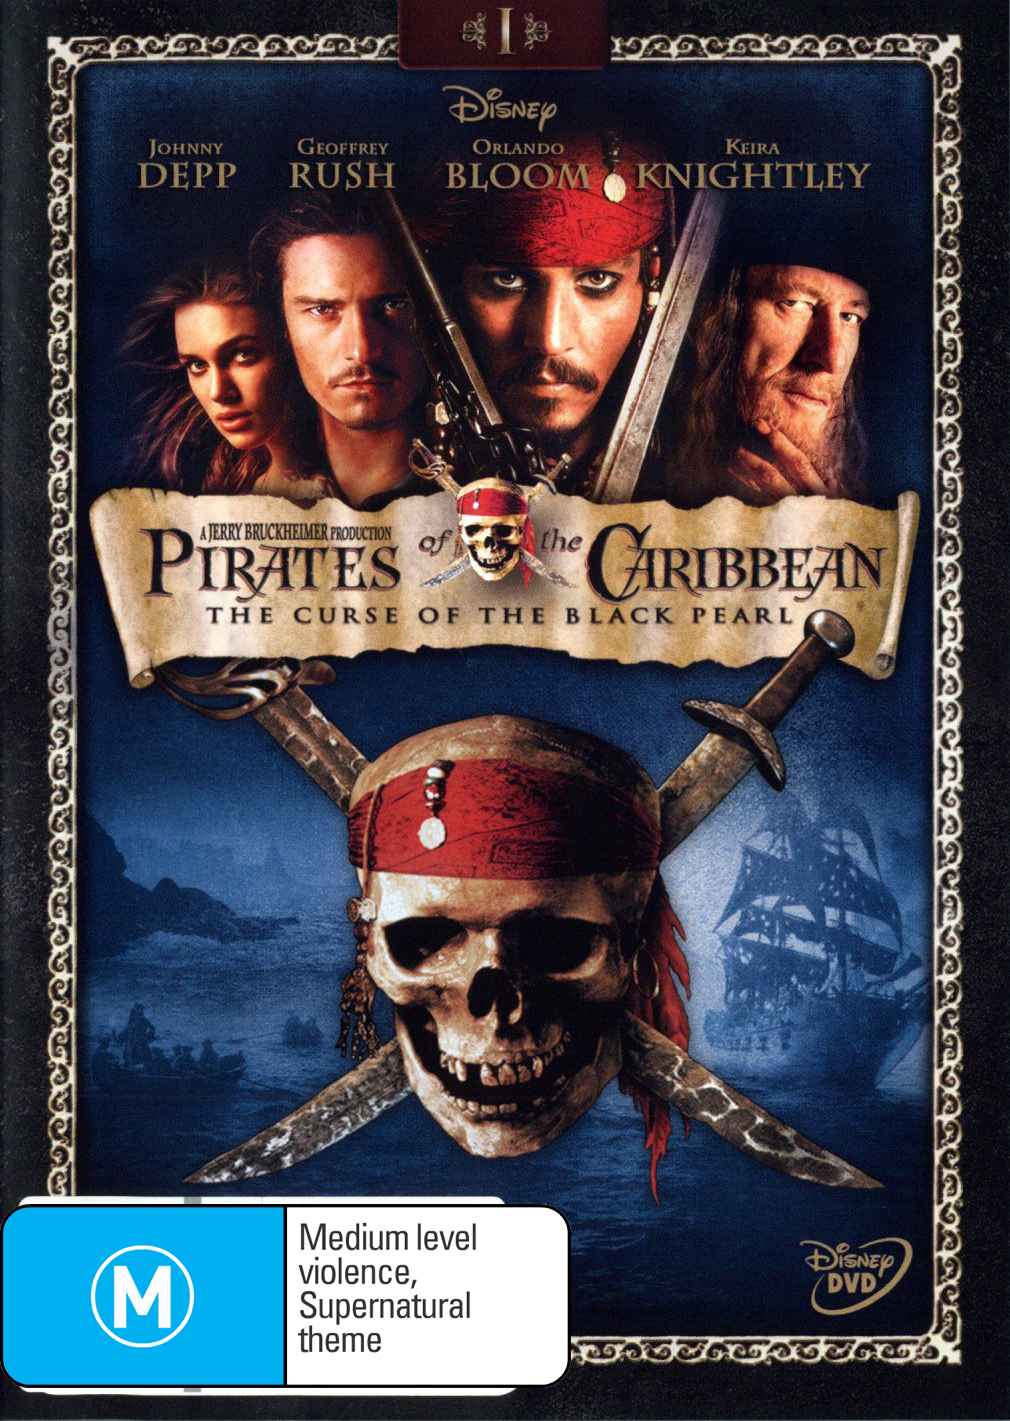 Pirates of the Caribbean - The Curse of the Black Pearl on DVD image